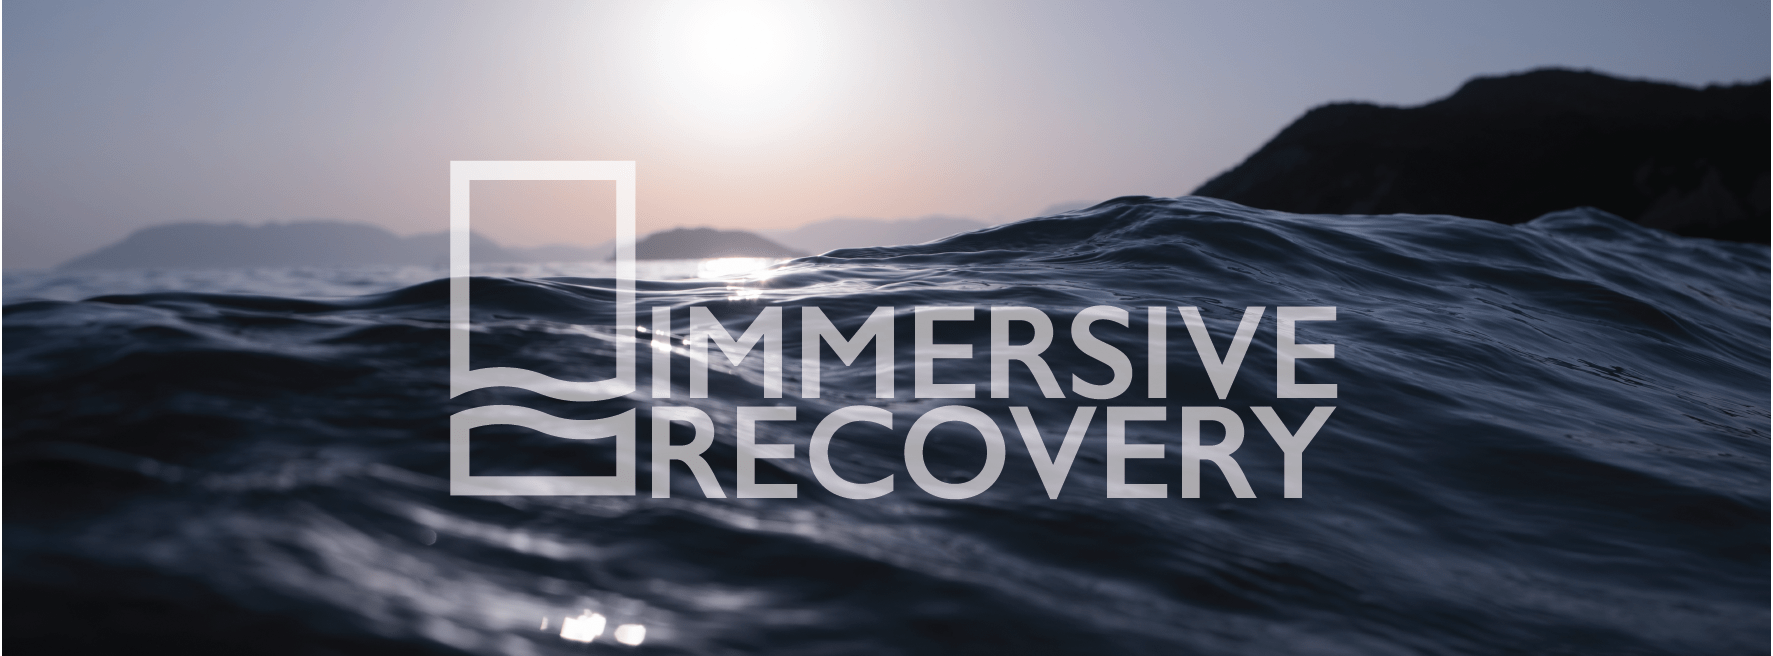 Immersive Recovery